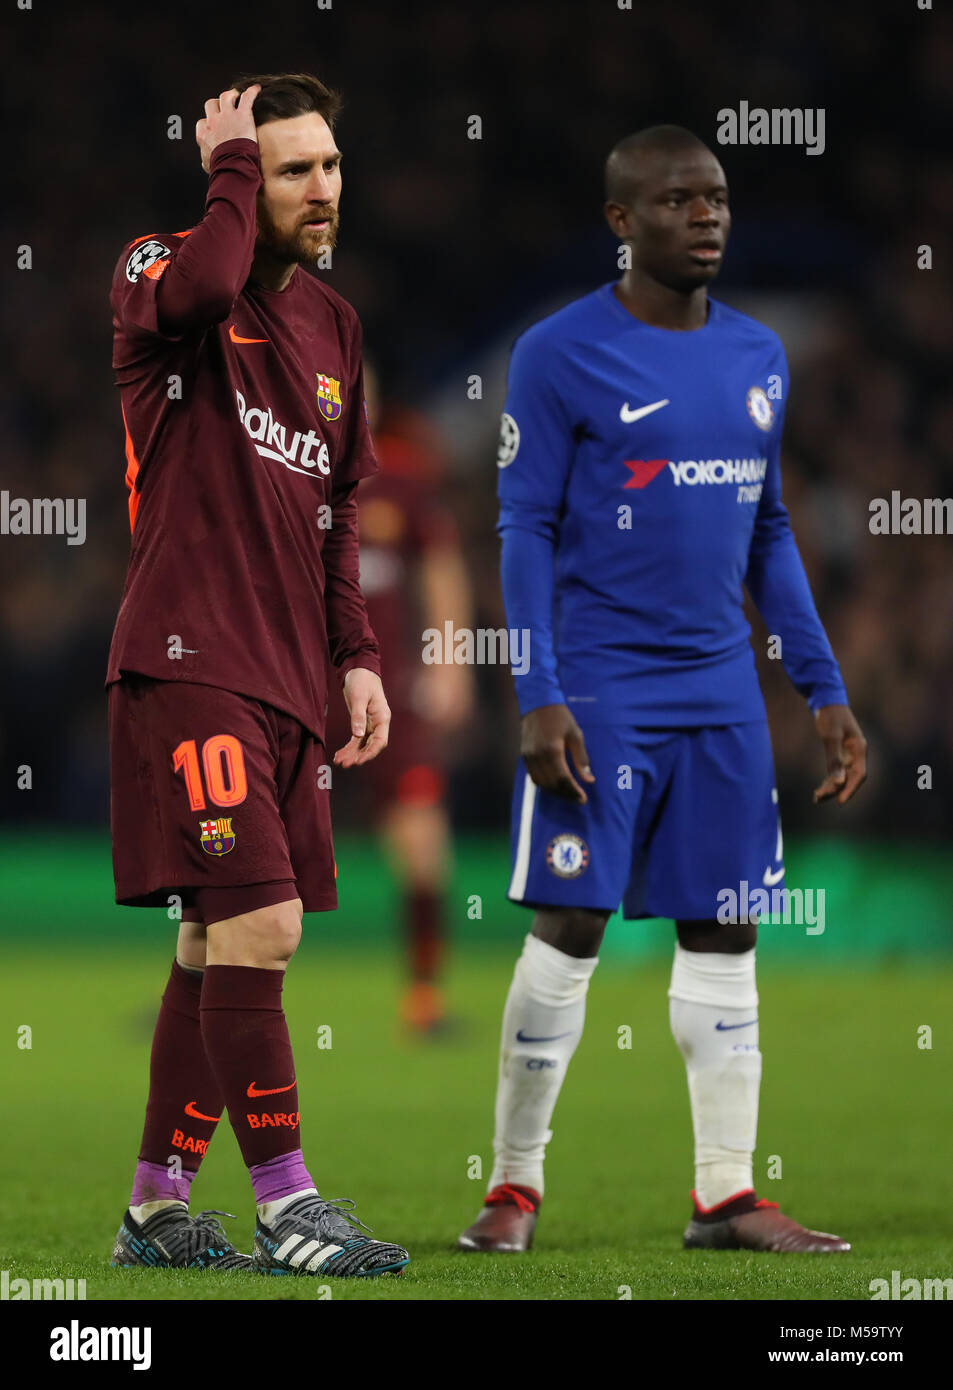 Lionel Messi of Barcelona and Ngolo Kante